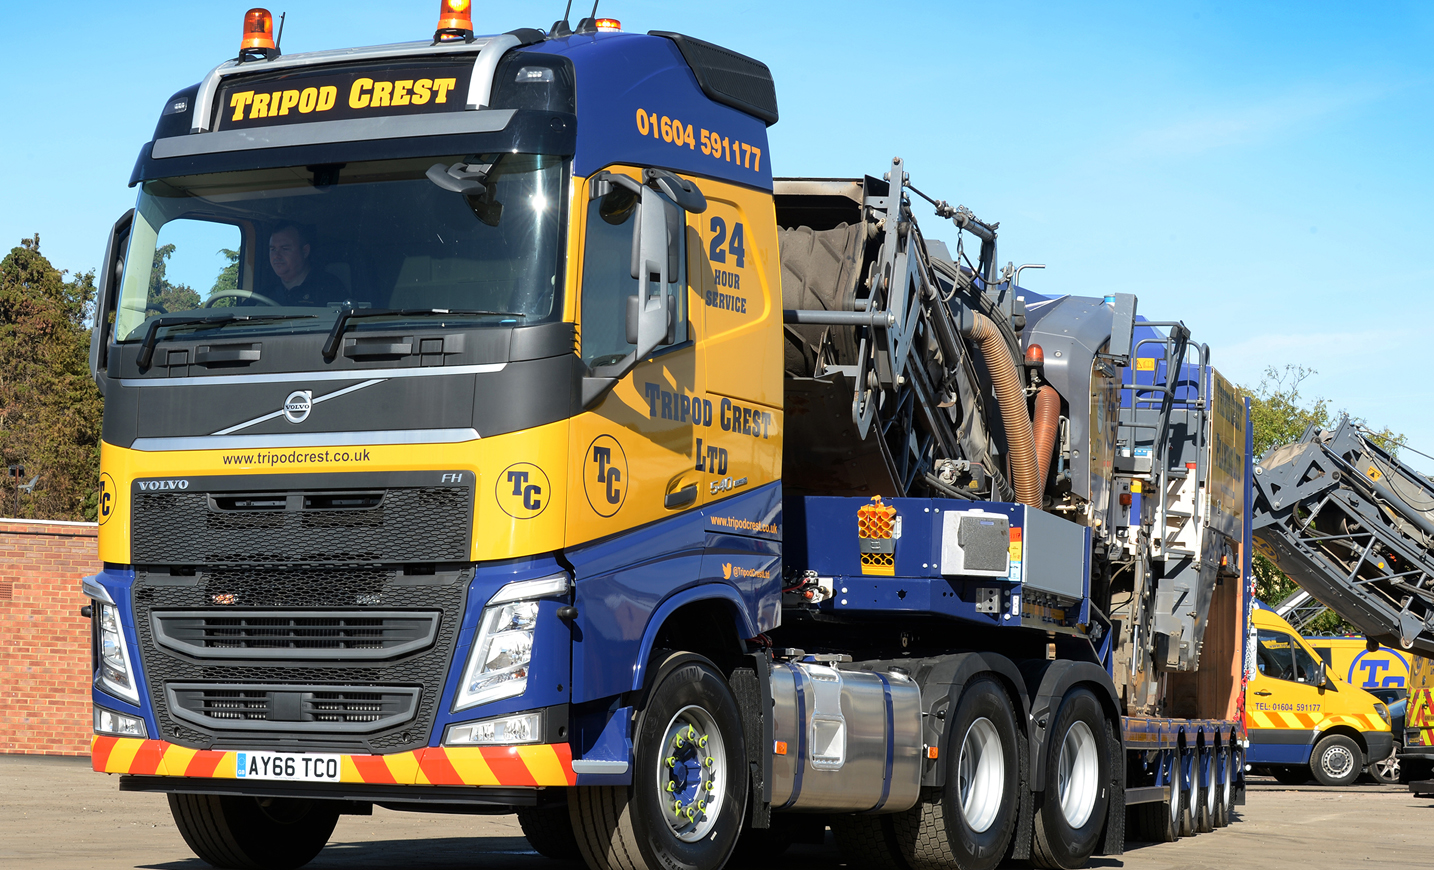 Three new Volvo FH for Tripod Crest used for transporting ...